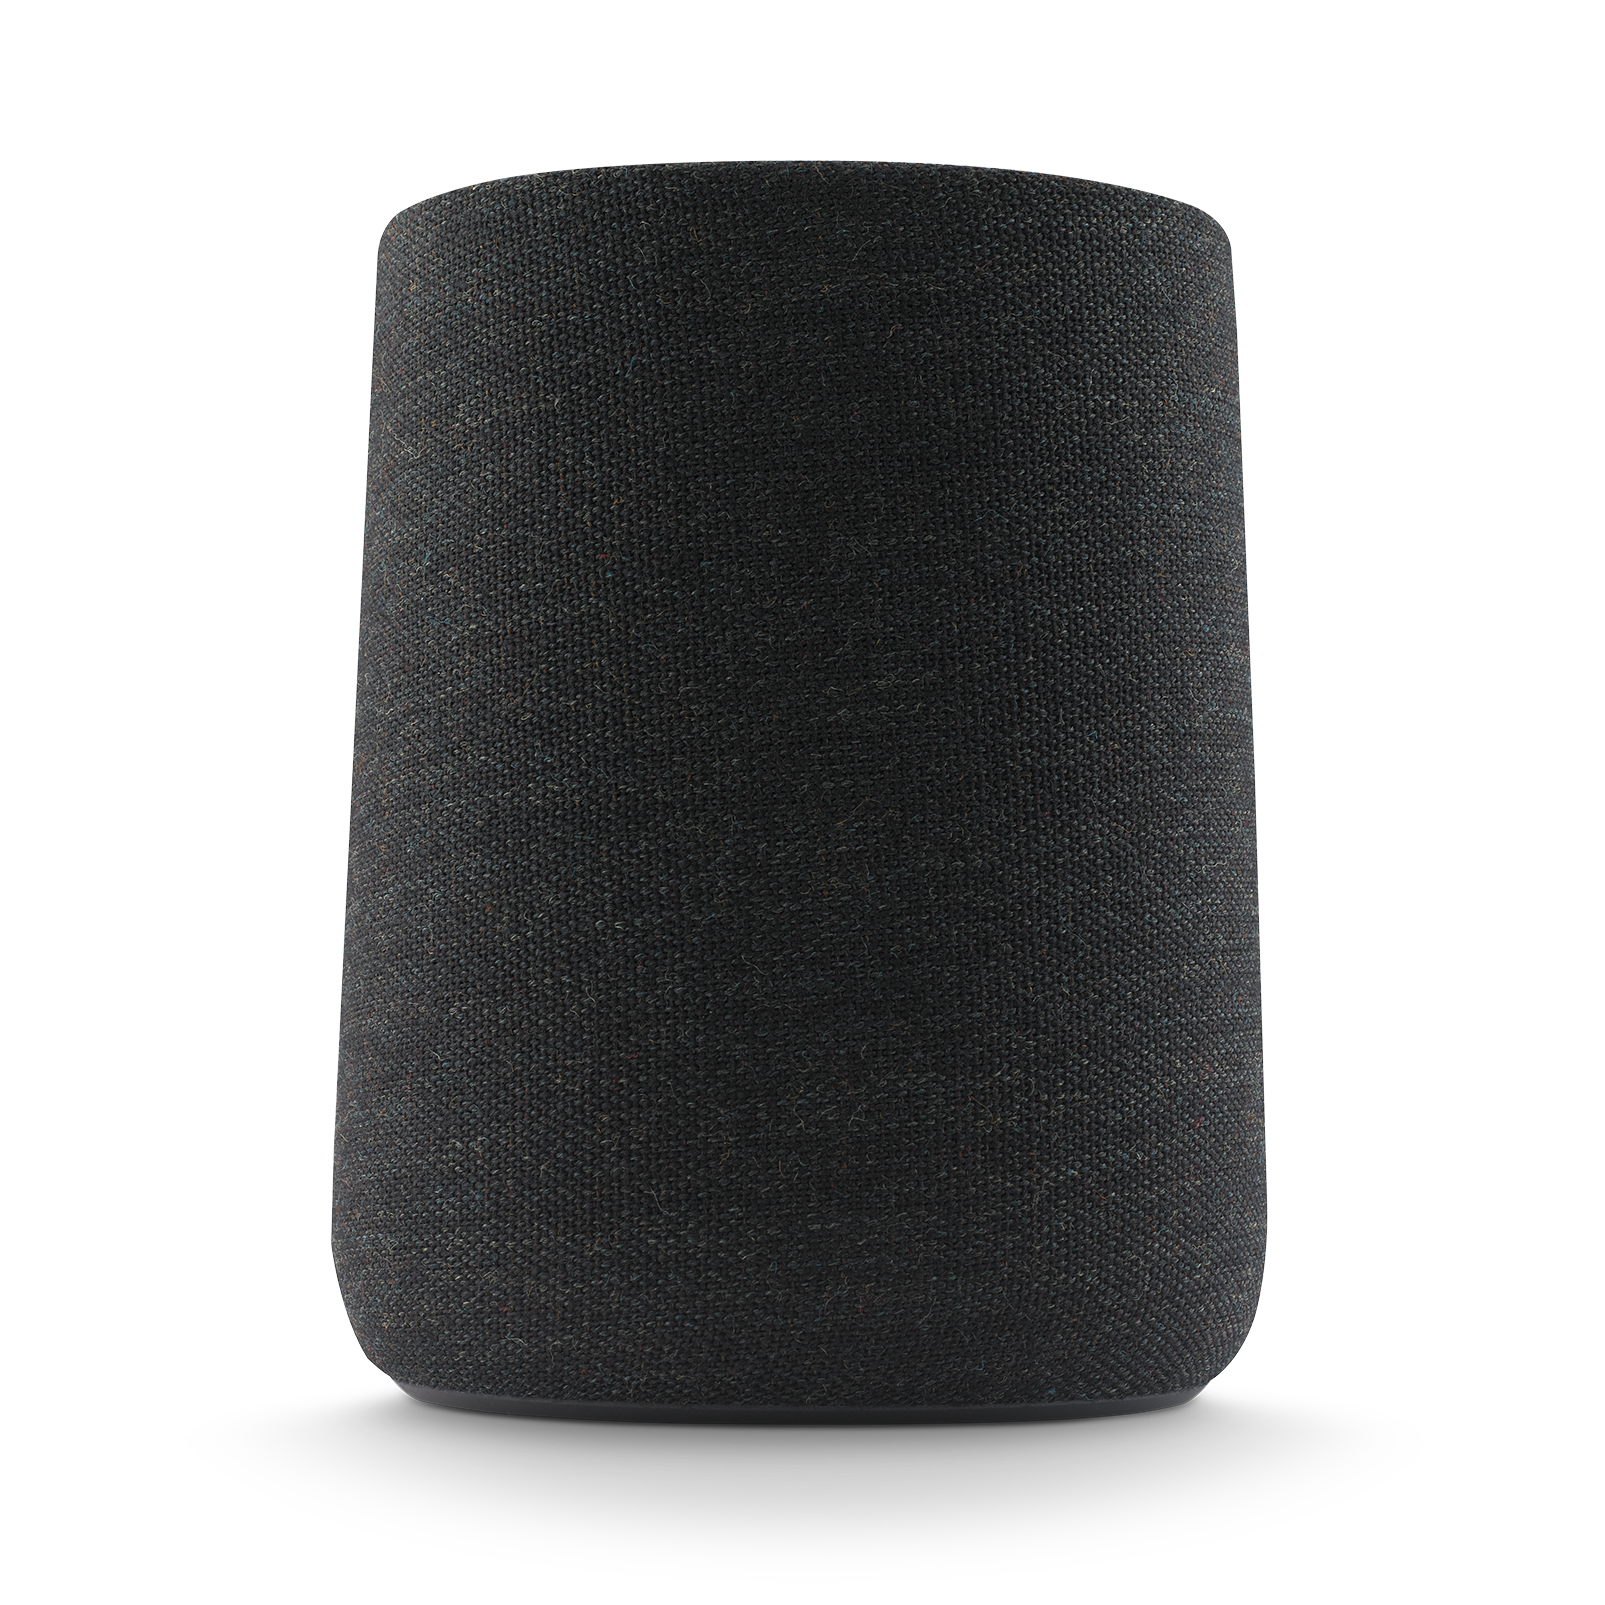 Harman Kardon Citation One MKII - Black - All-in-one smart speaker with room-filling sound - Detailshot 1